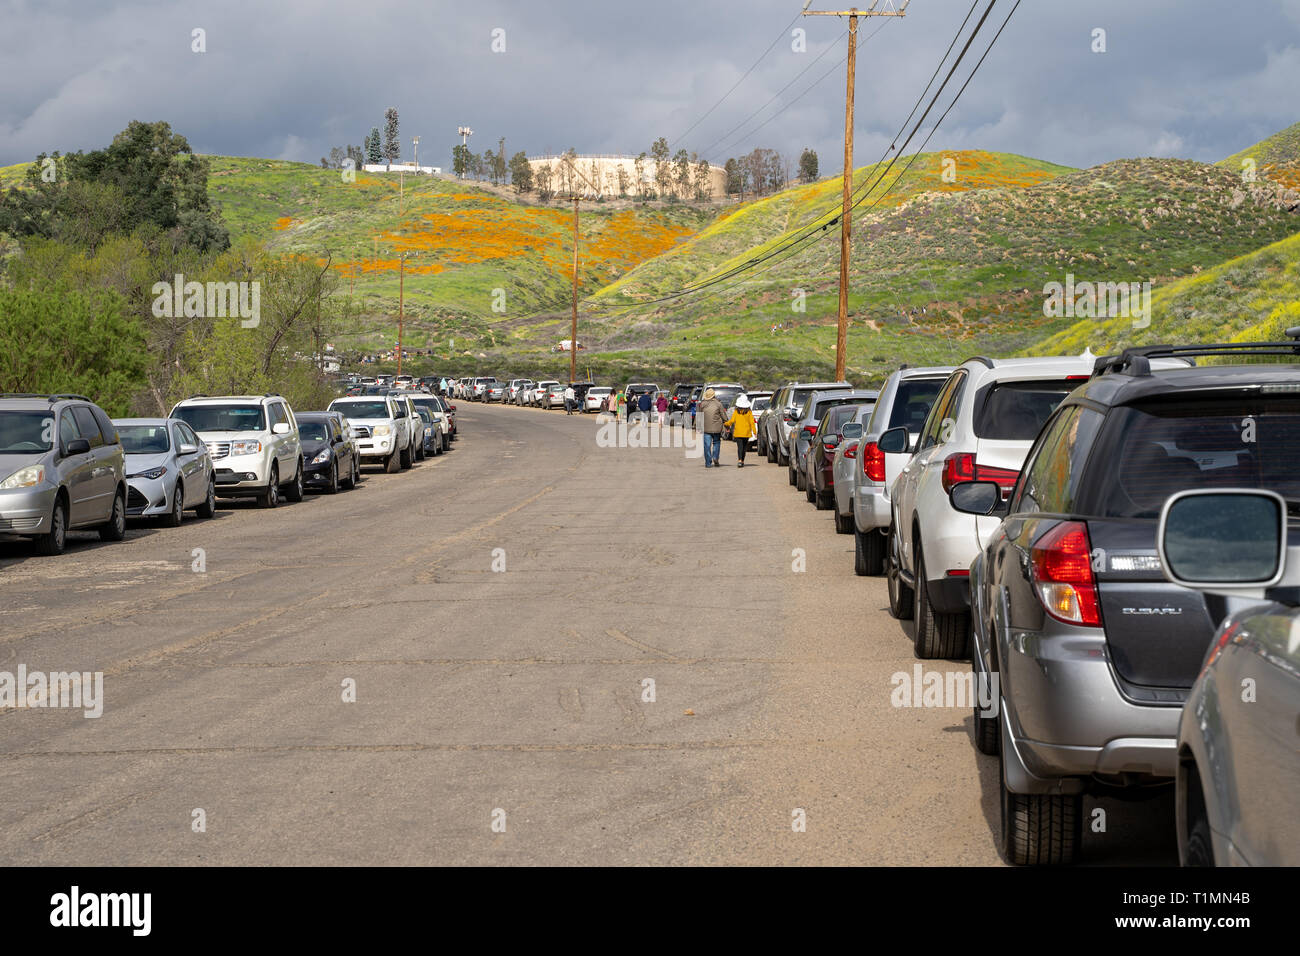 Lake Elsinore, California - March 20, 2019: Cars parked along the side of the road, showing the difficult parking situation in Lake Elsinore Walker Ca - Stock Image